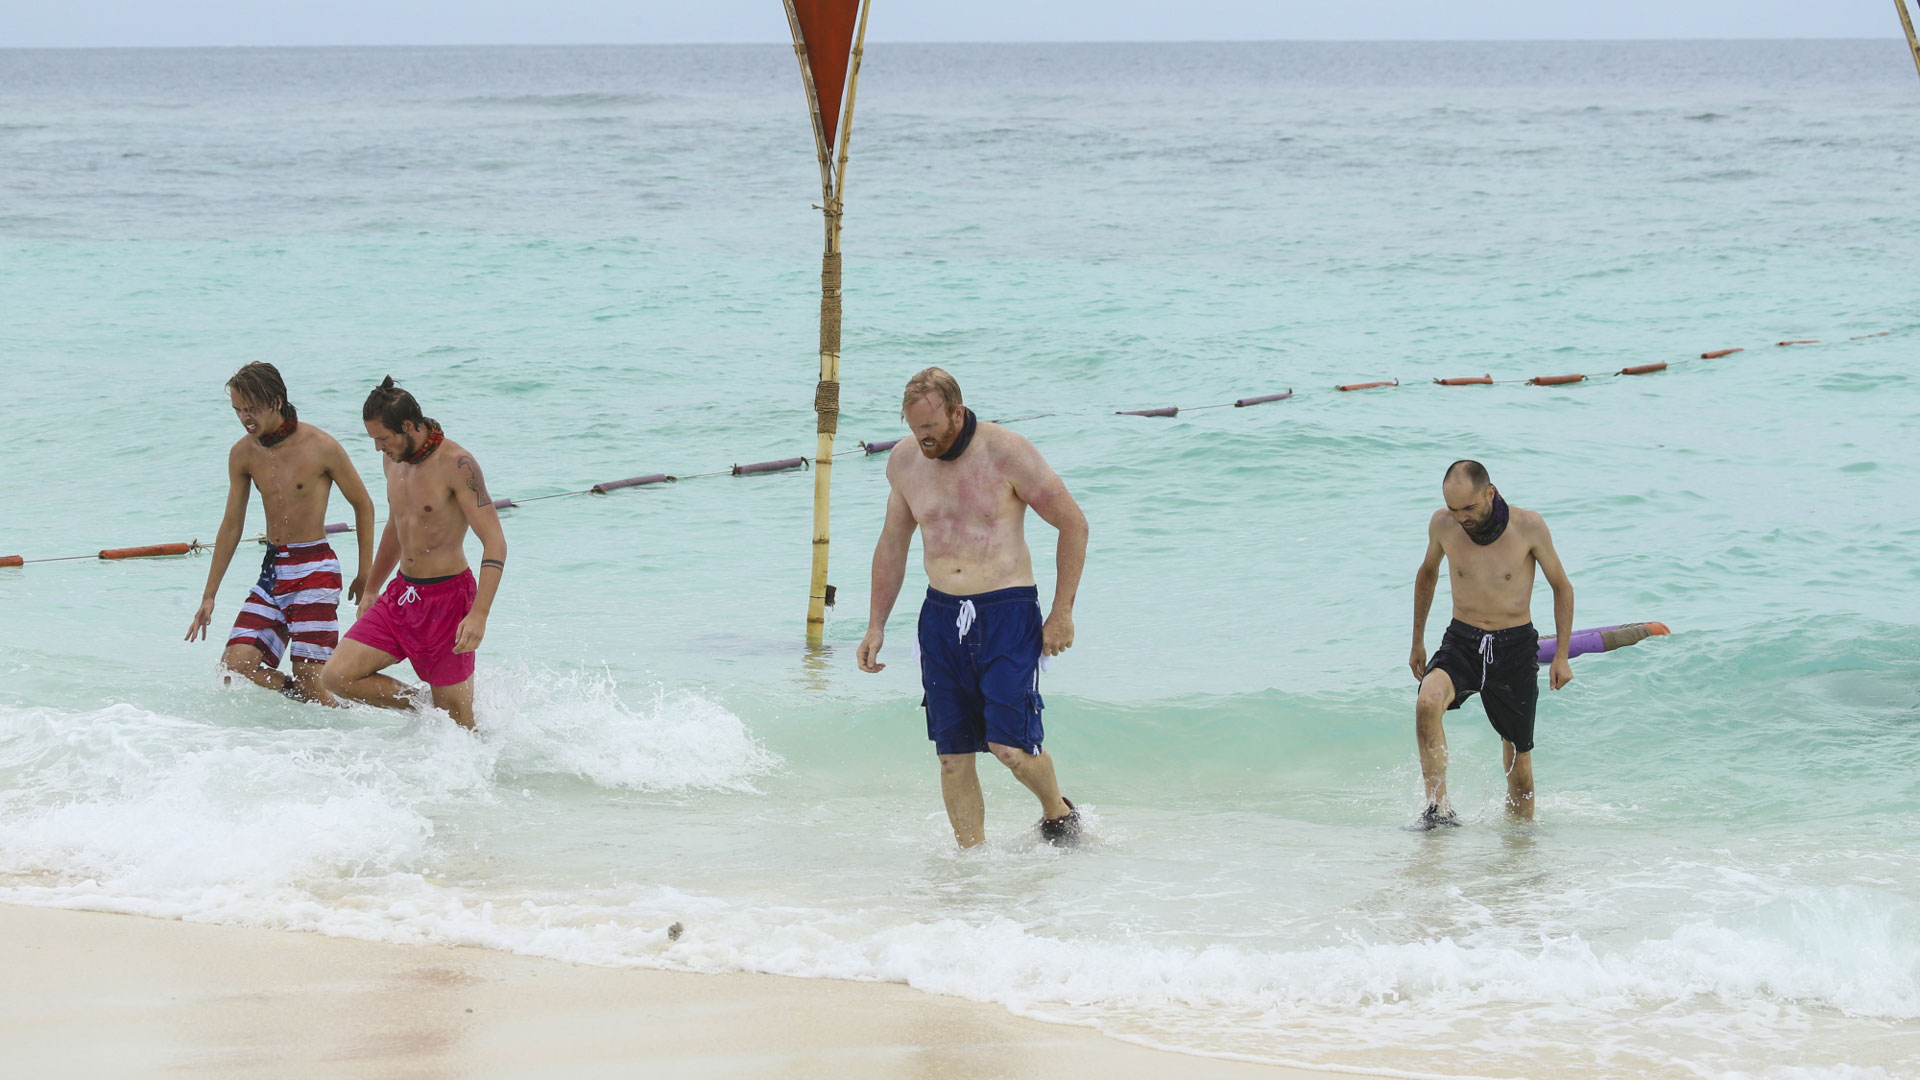 Will, Taylor, Chris, and David walk back to shore.